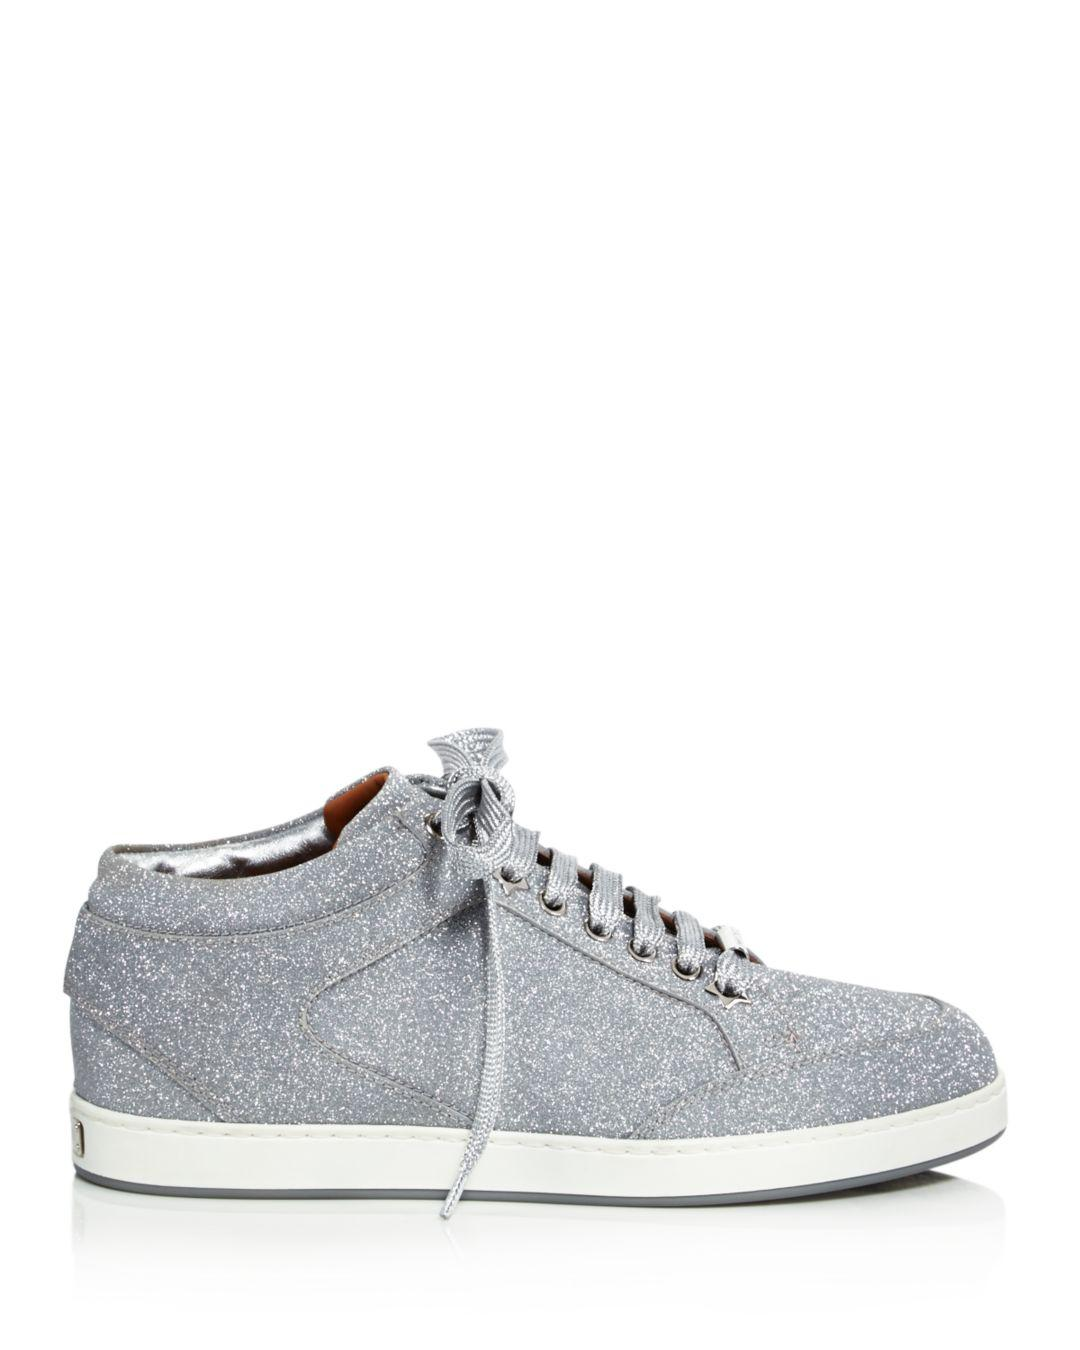 09873e15adc9 Lyst - Jimmy Choo Women's Miami Glitter Leather Low Top Lace Up Sneakers in  Metallic